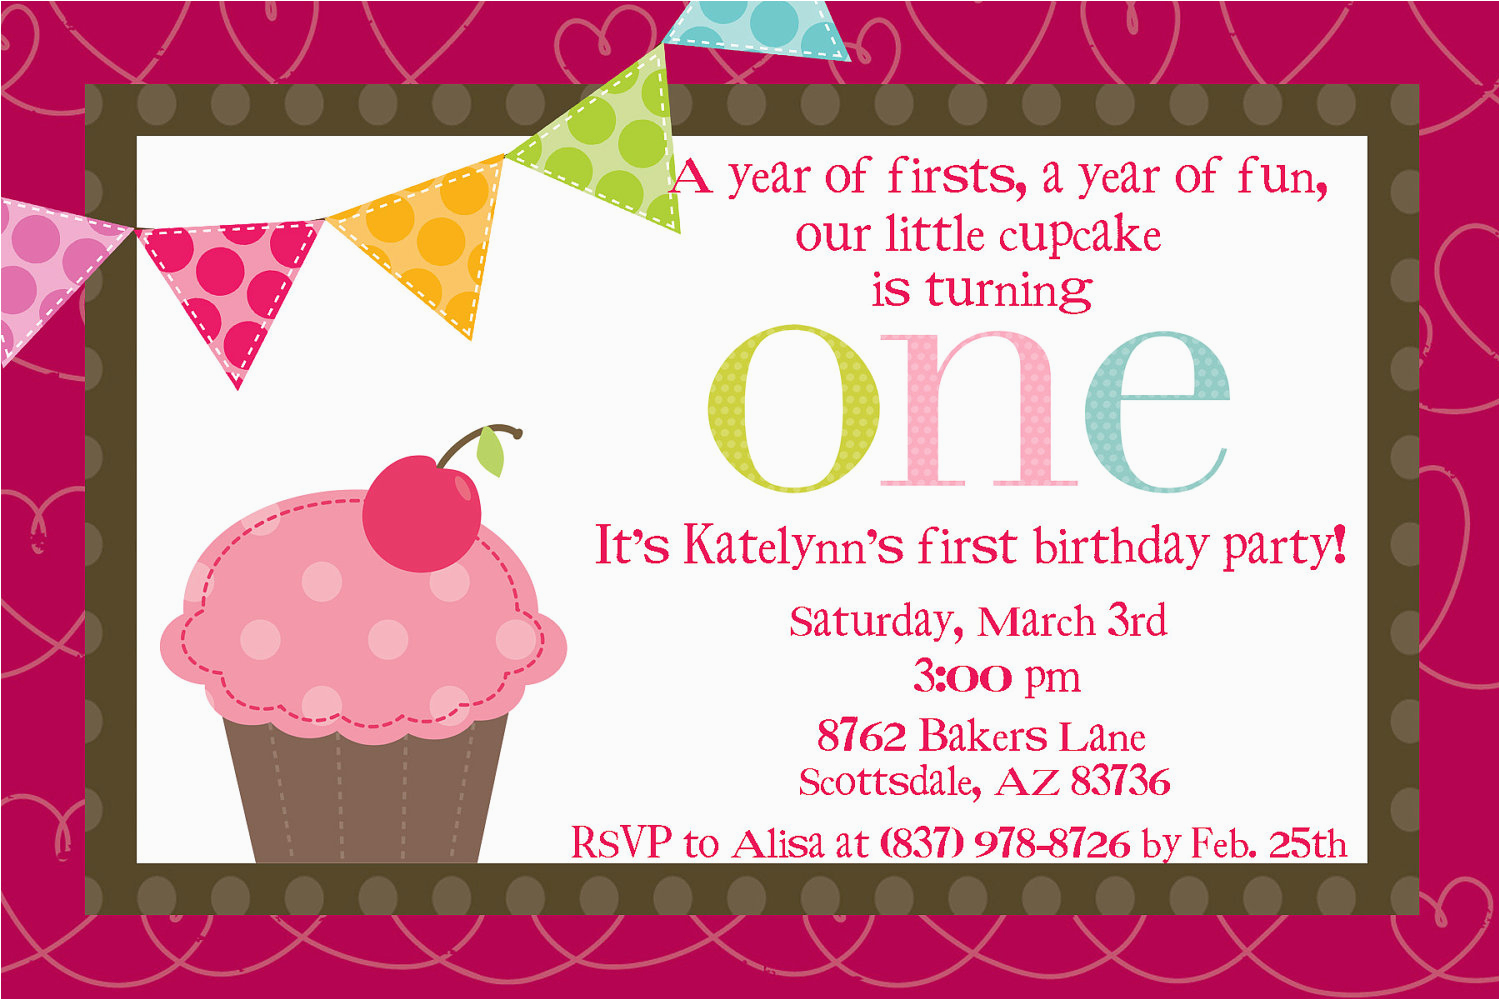 Birthday Invite Ecards Email Invitations Free Templates Egreeting